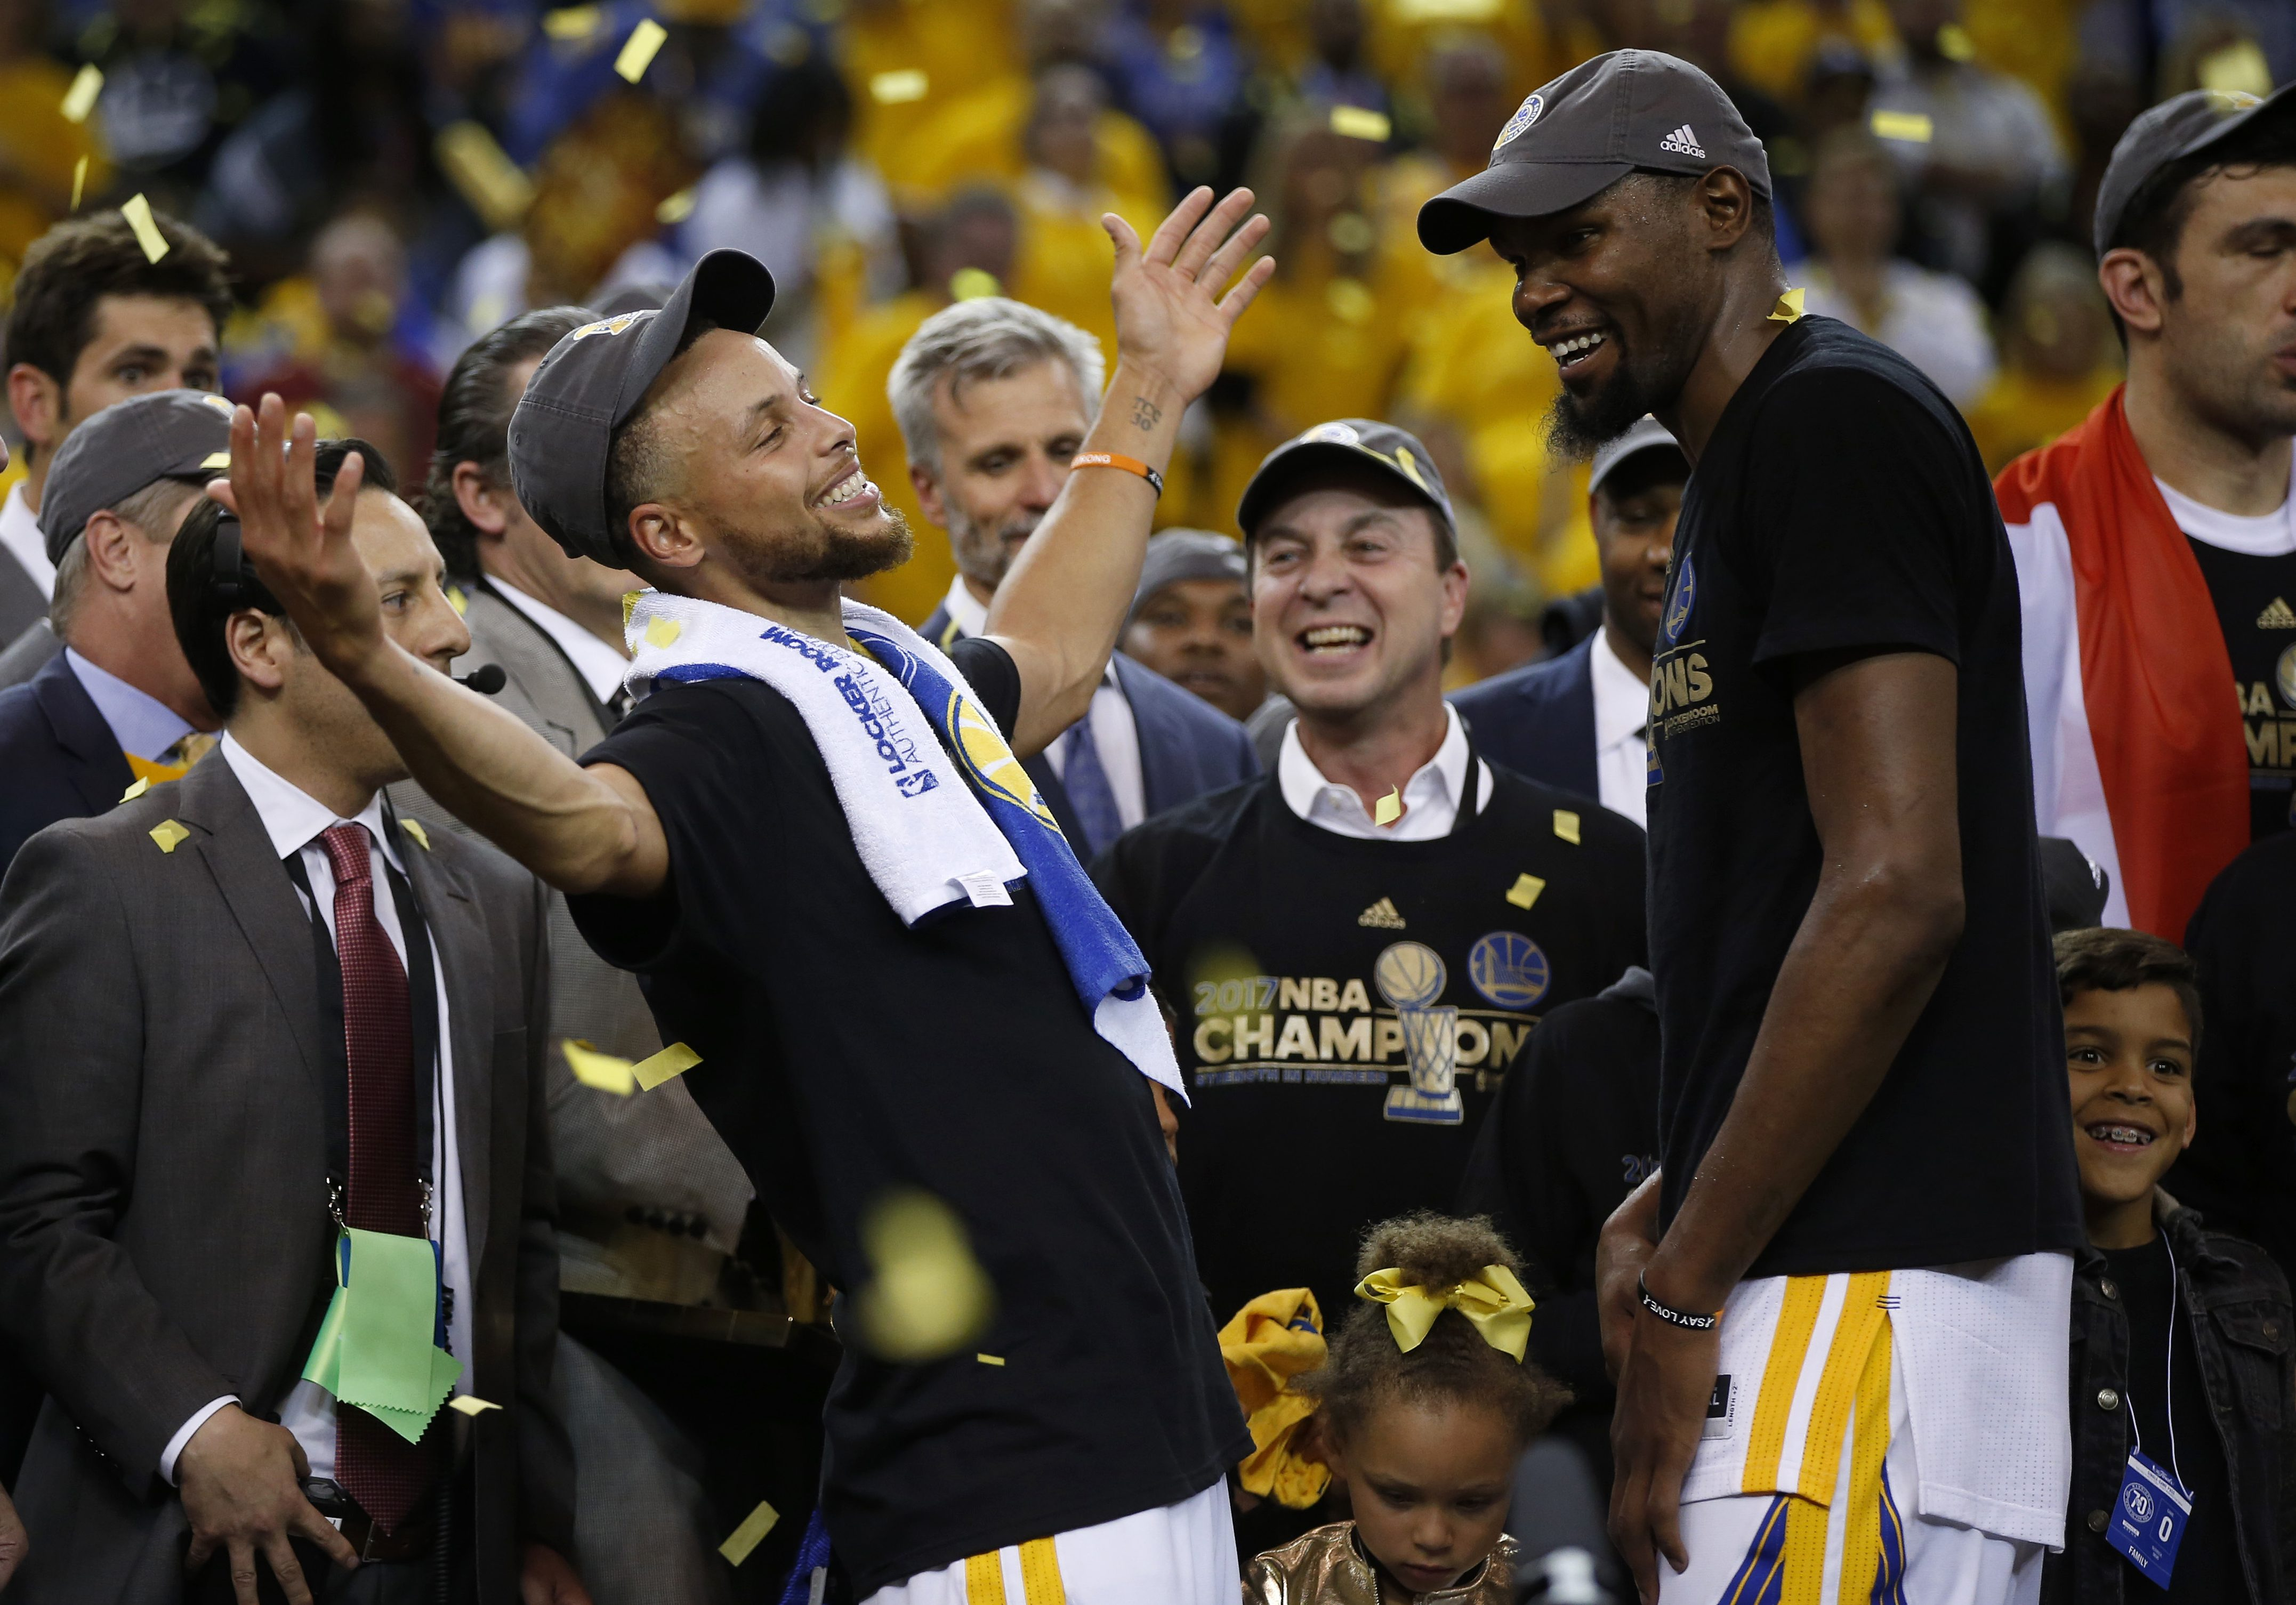 The Golden State Warriors´ Stephen Curry, left, celebrates with teammate Kevin Durant after defeating the Cleveland Cavaliers, 129-120, in Game 5 of the NBA Finals at Oracle Arena in Oakland, Calif., on Monday, June 12, 2017. (Nhat V. Meyer/Bay Area News Group/TNS)